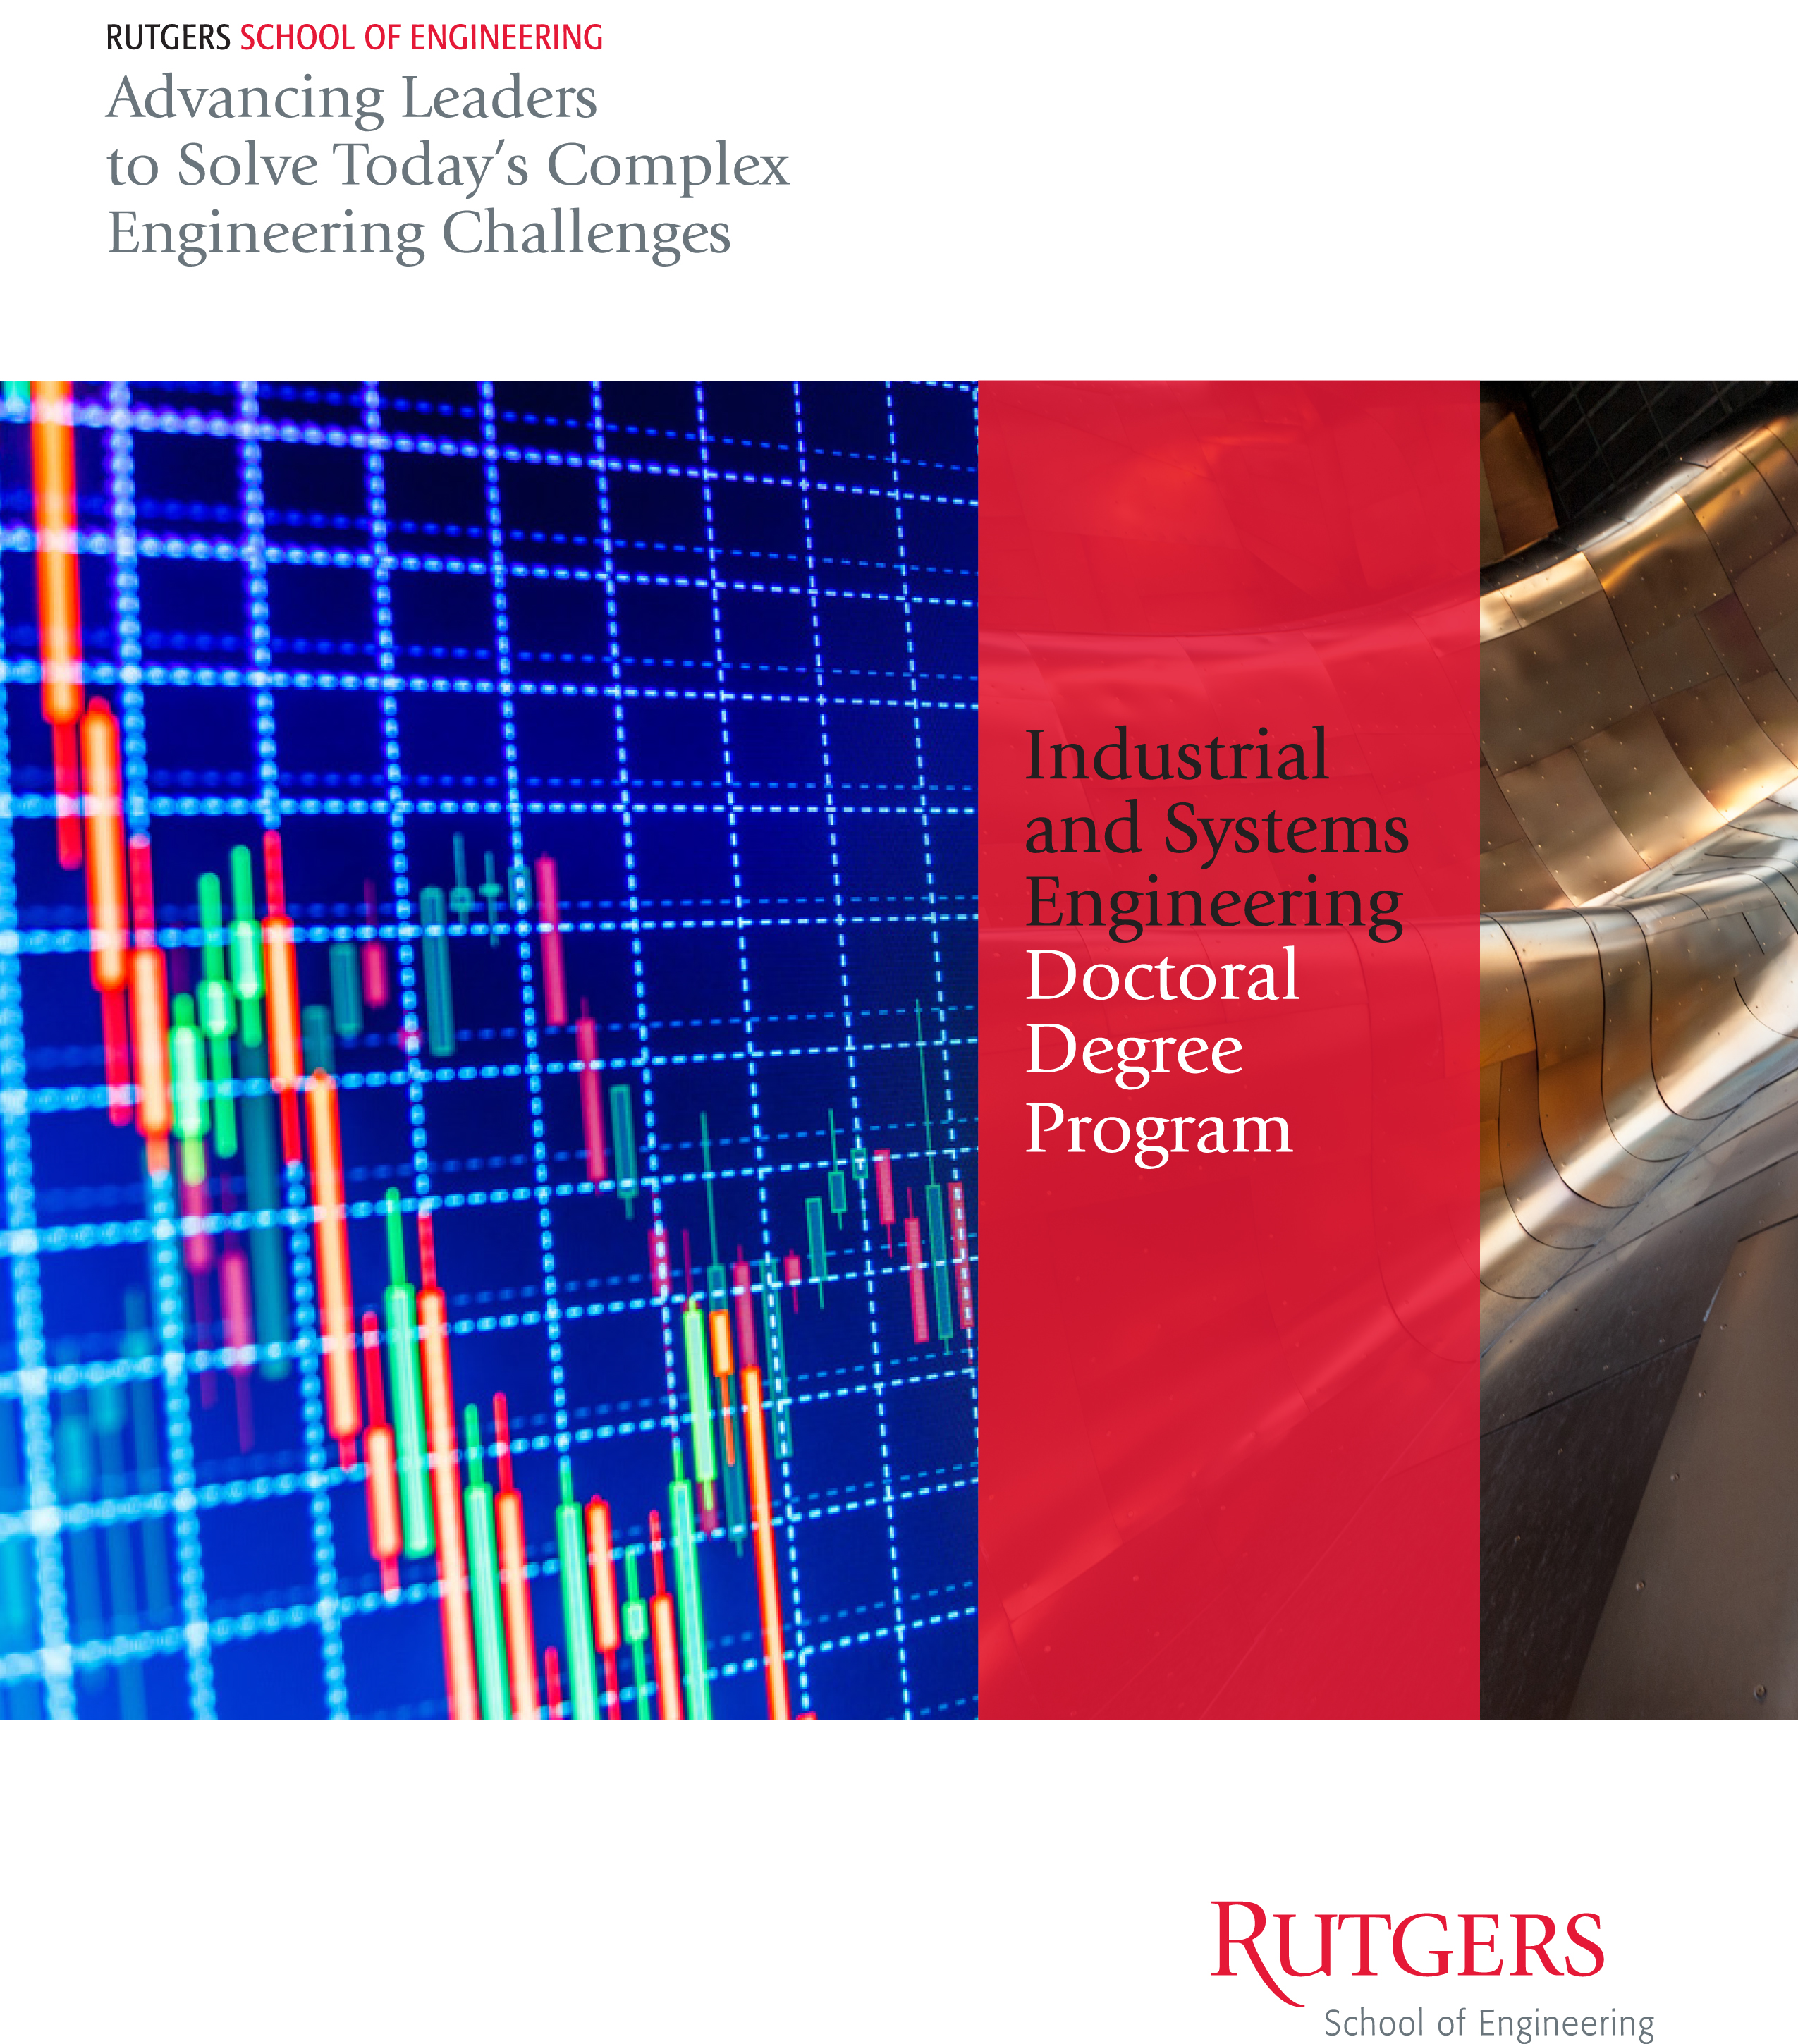 doctoral degree in industrial and systems engineering